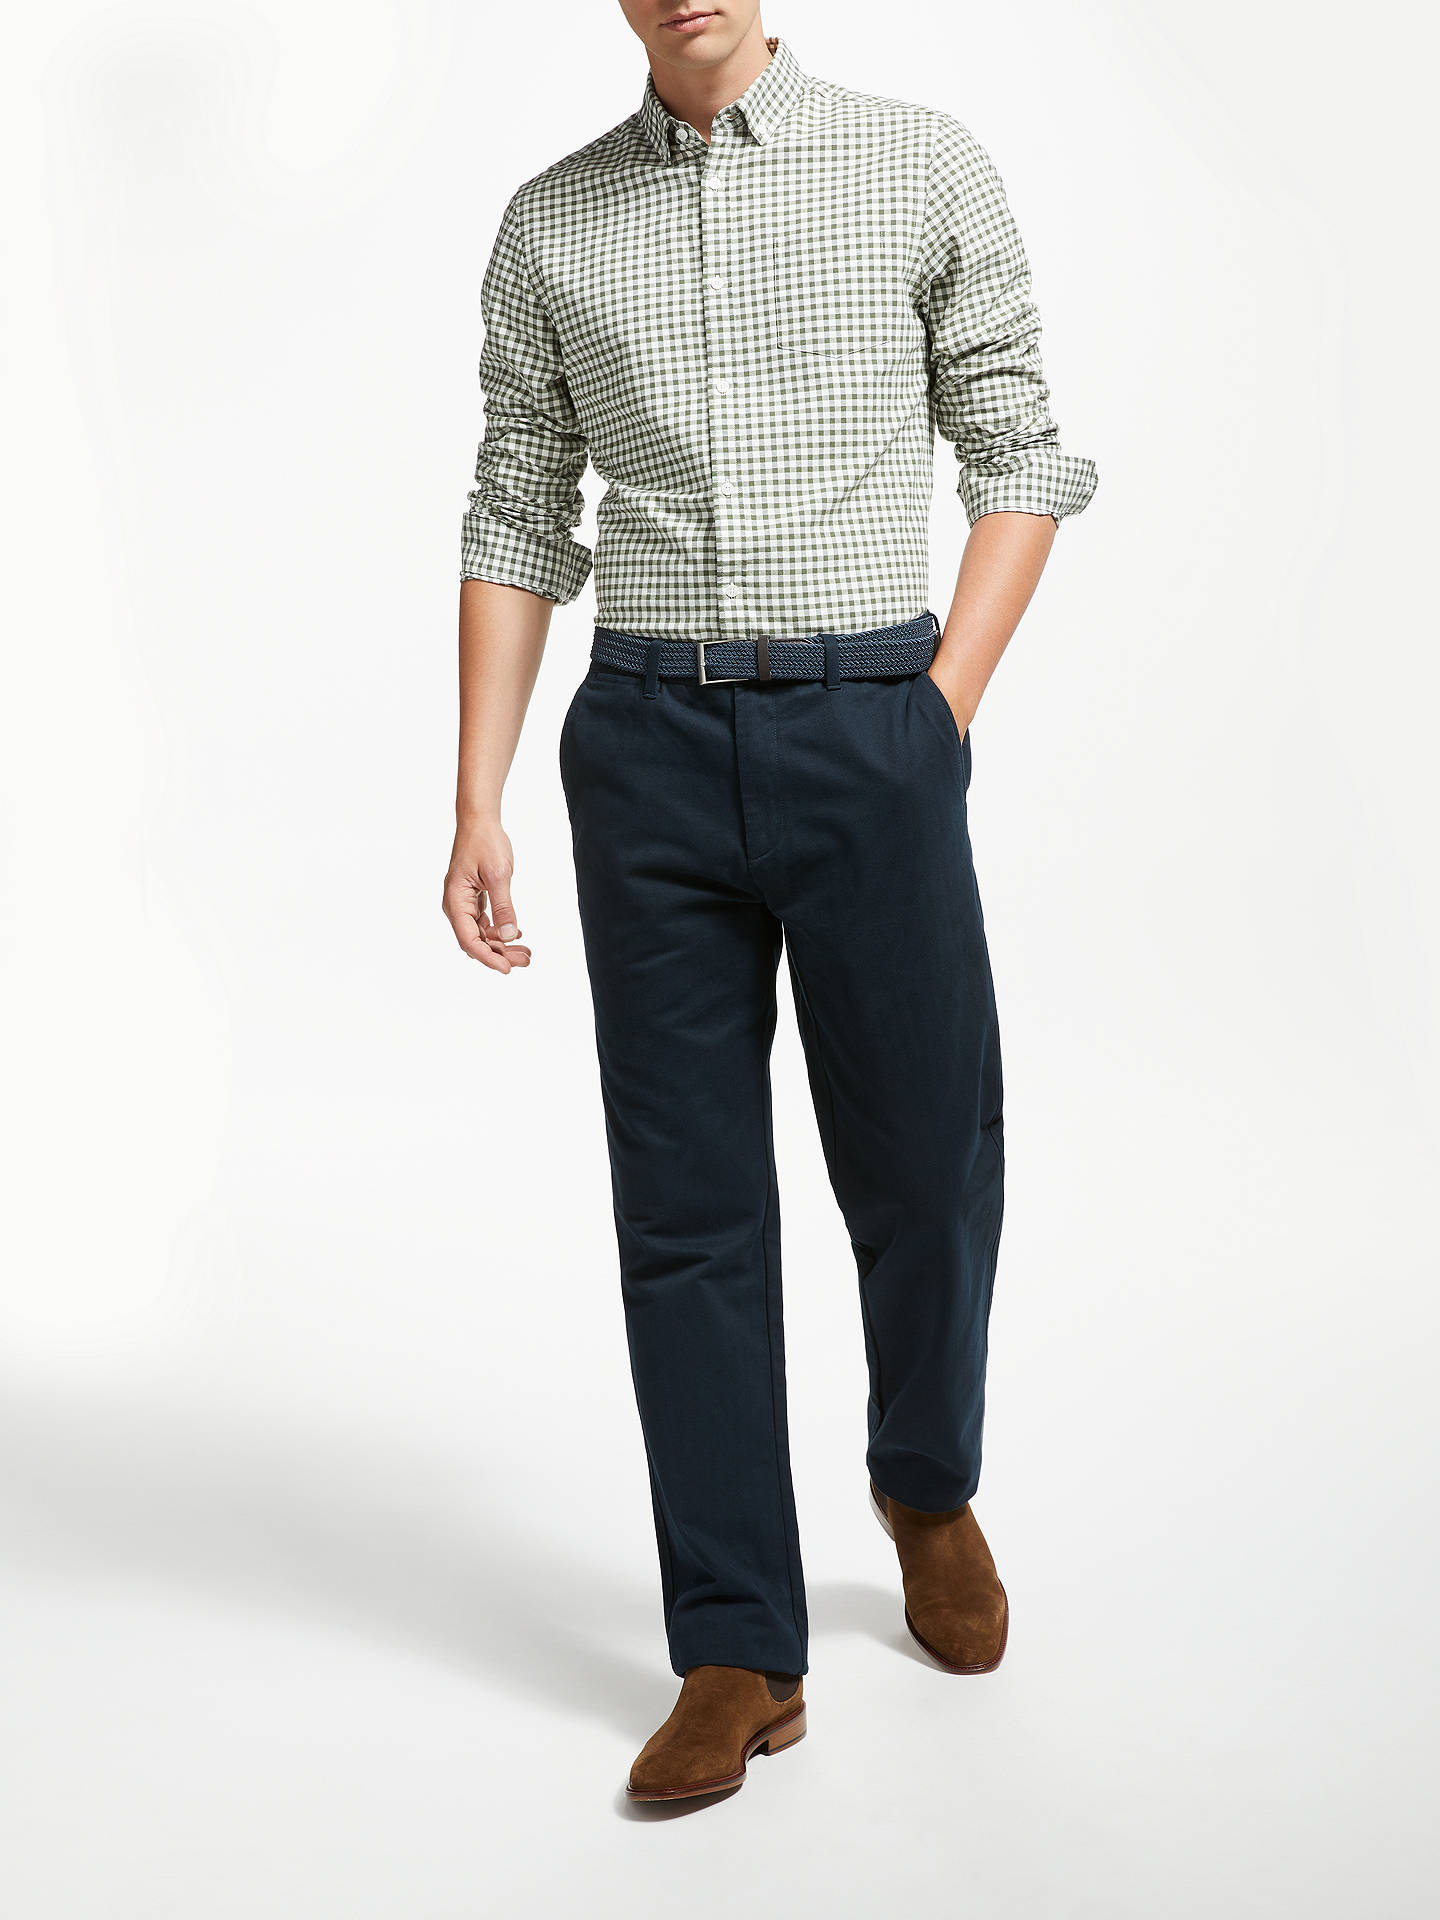 Buy John Lewis & Partners Semi Formal Cotton Trousers with Belt, Navy, 32S Online at johnlewis.com